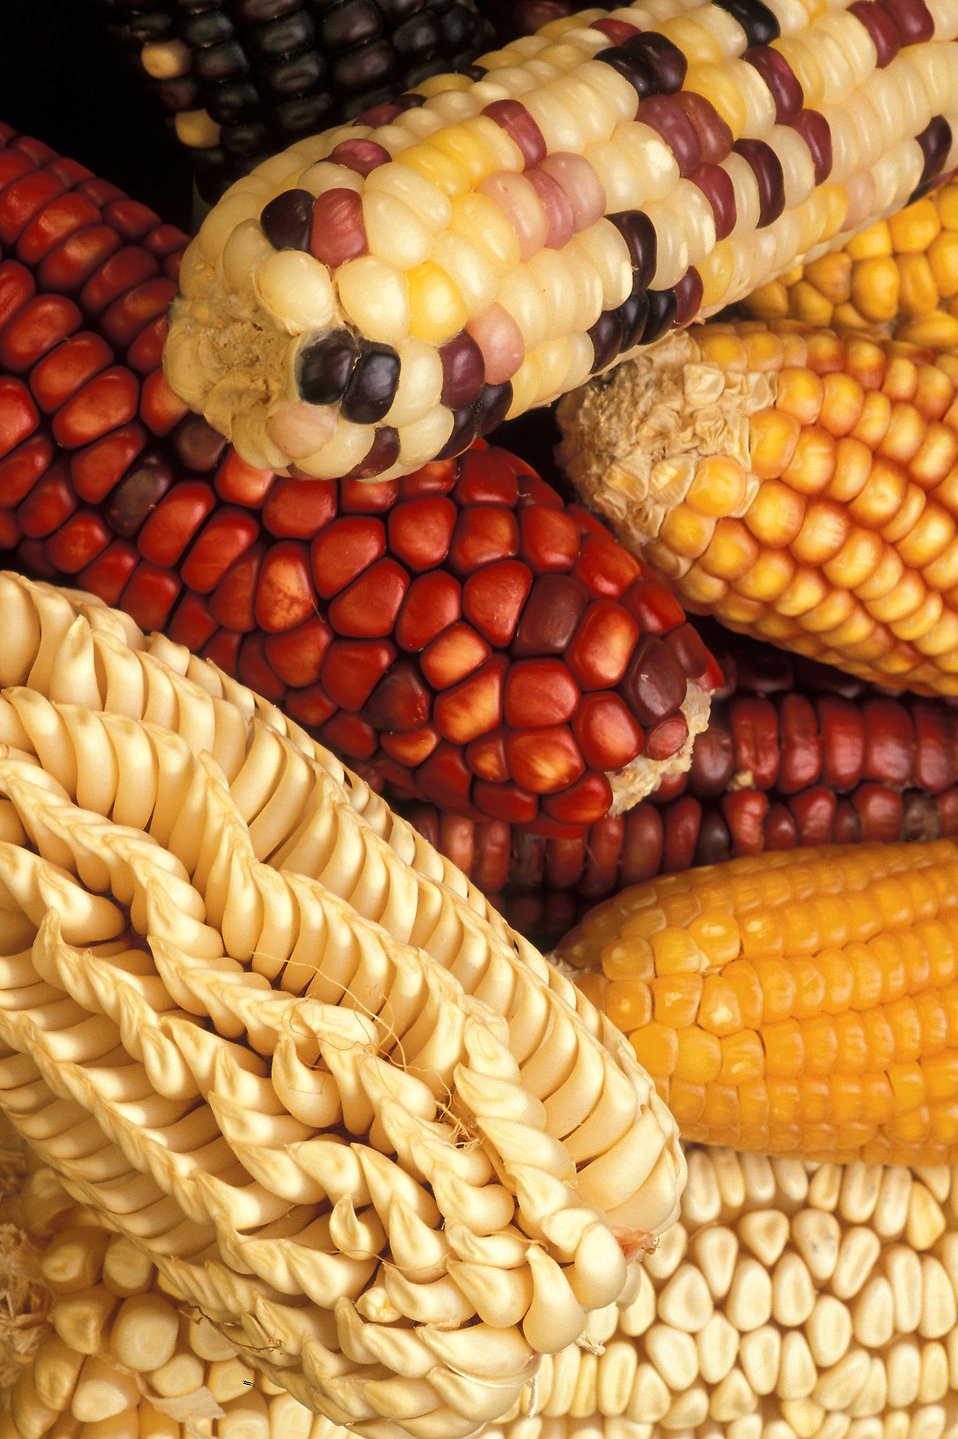 Close-up of various colored and shaped ears of corn : Free Stock Photo